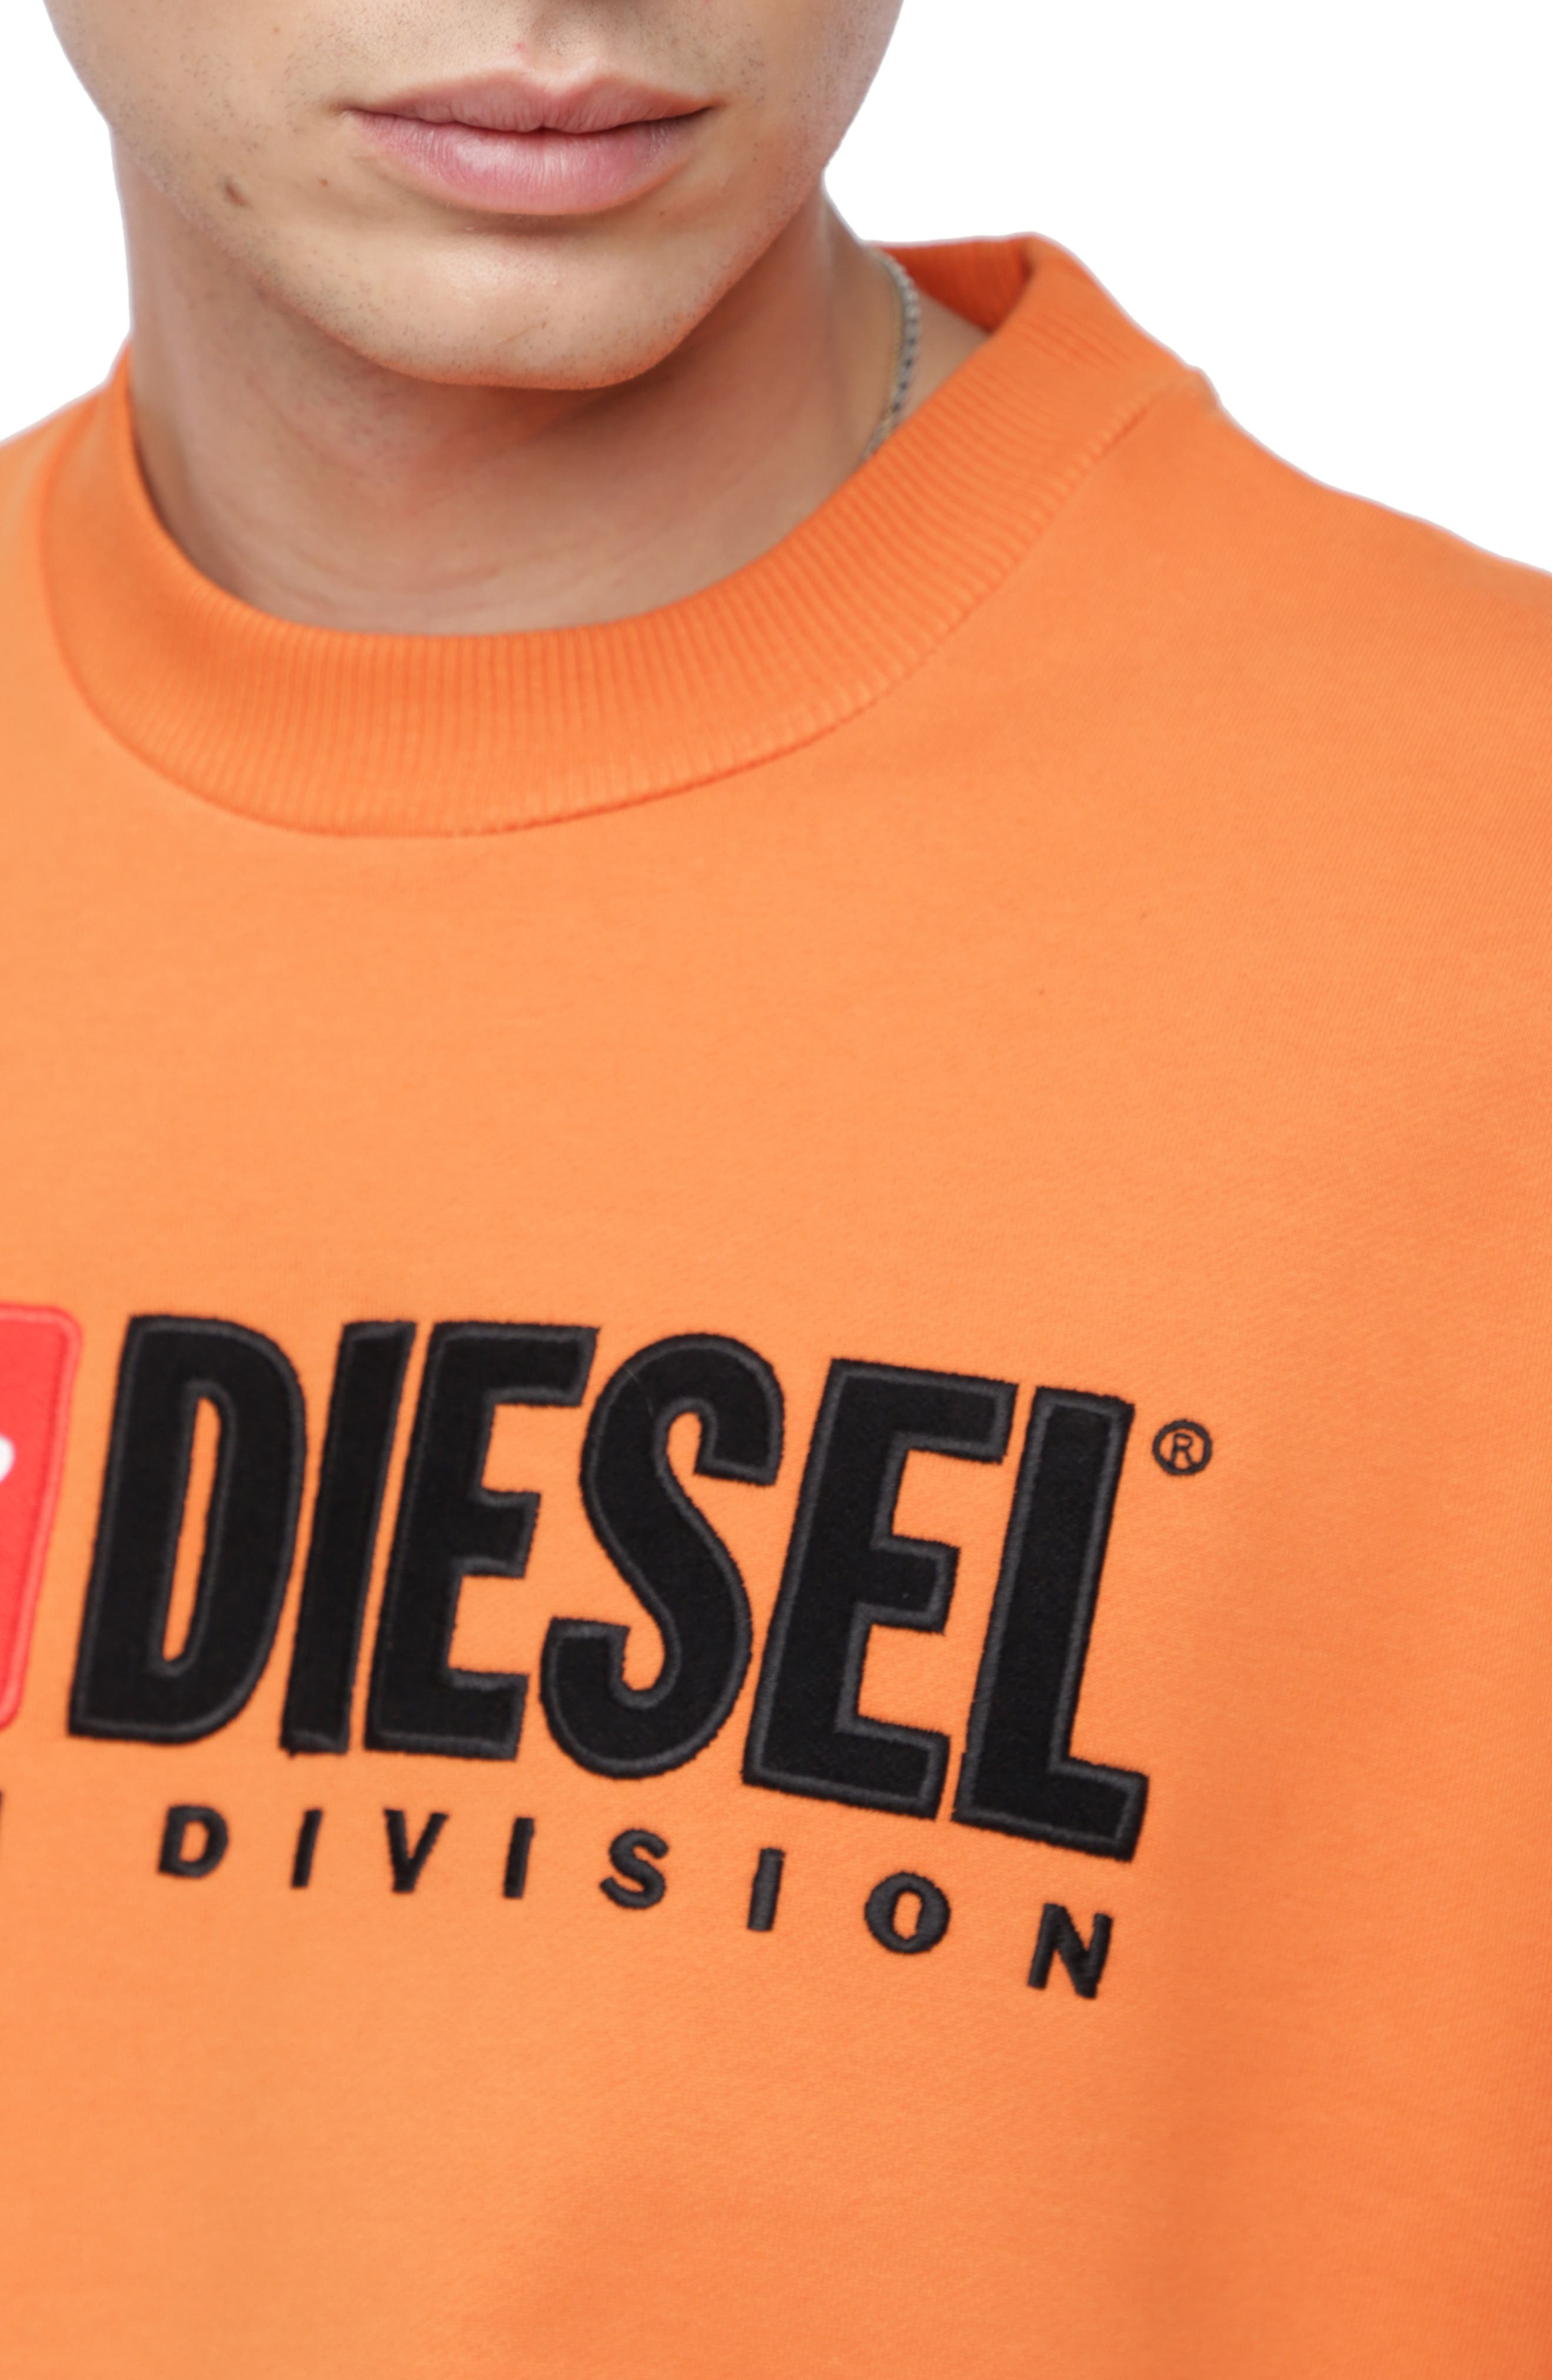 S-CREW-DIVISION Sweatshirt,                             Alternate thumbnail 3, color,                             ORANGE